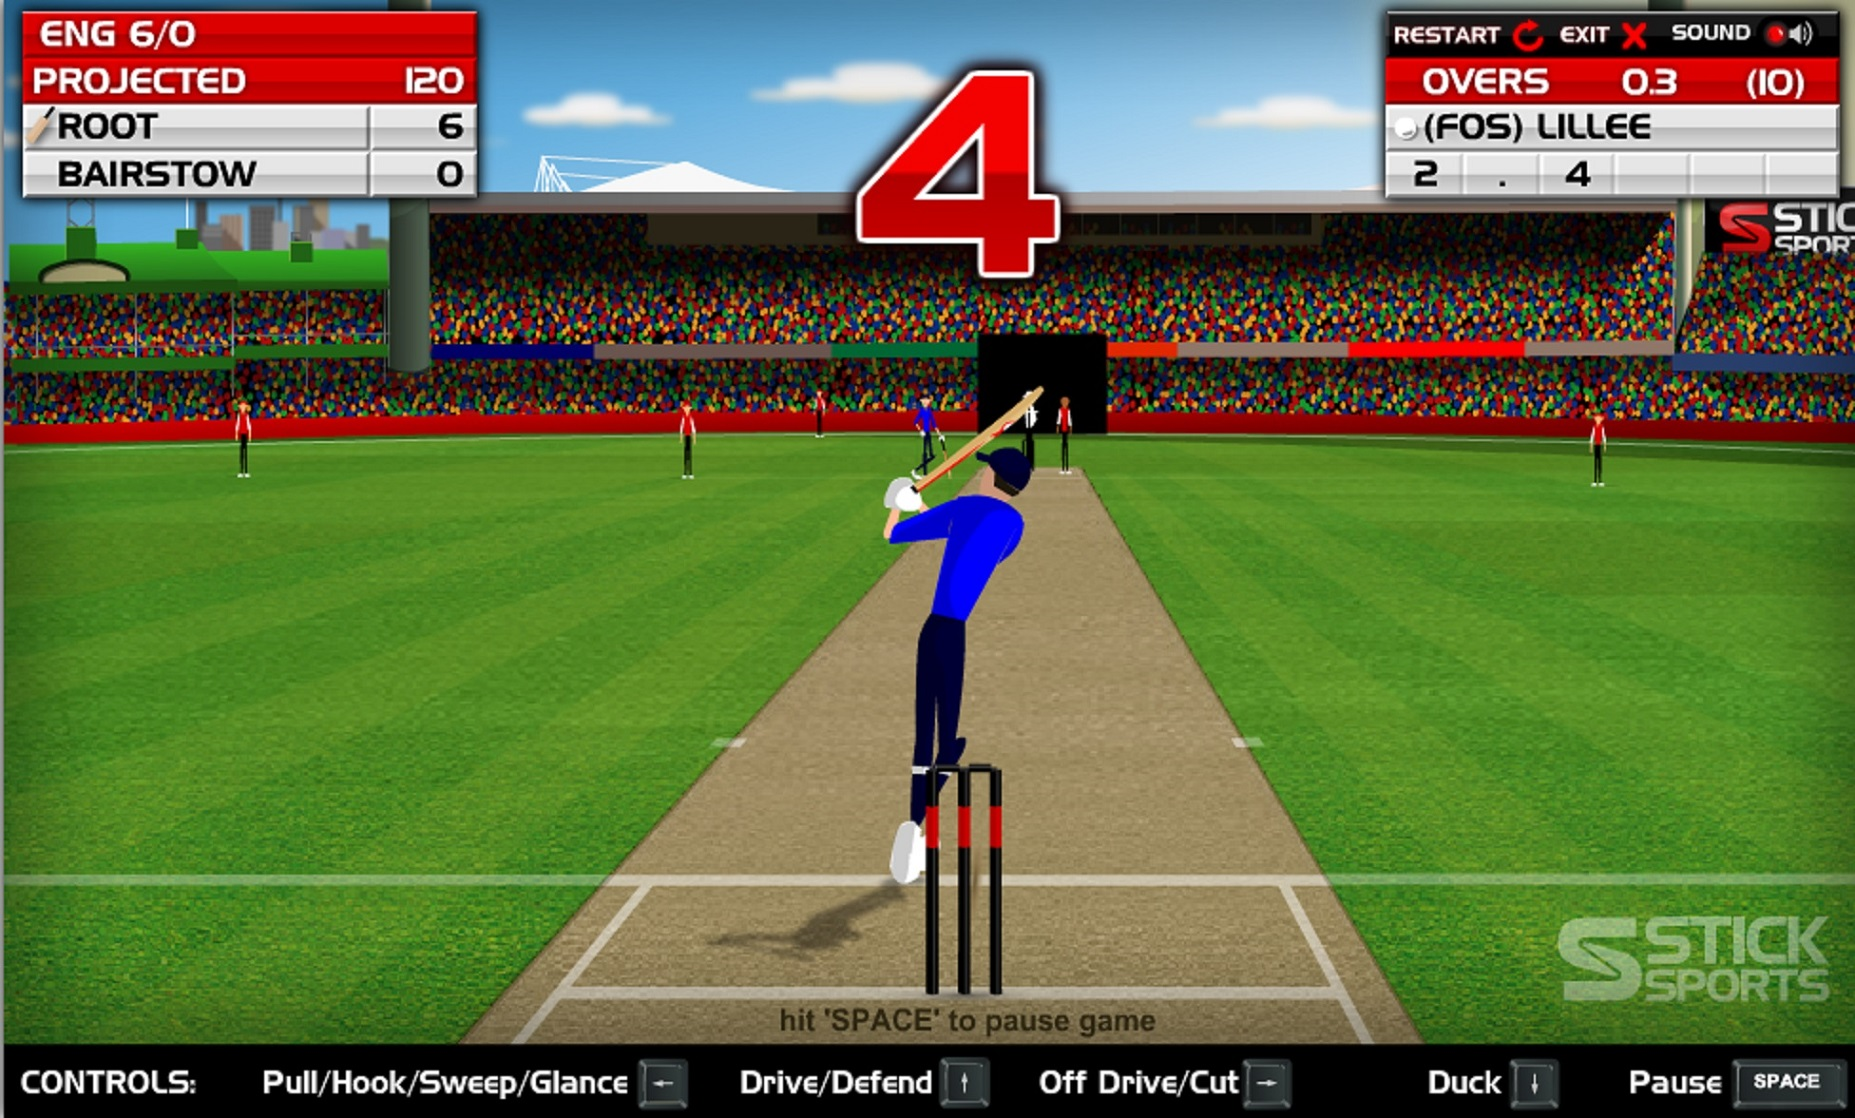 A screen grab from Stick Sports website